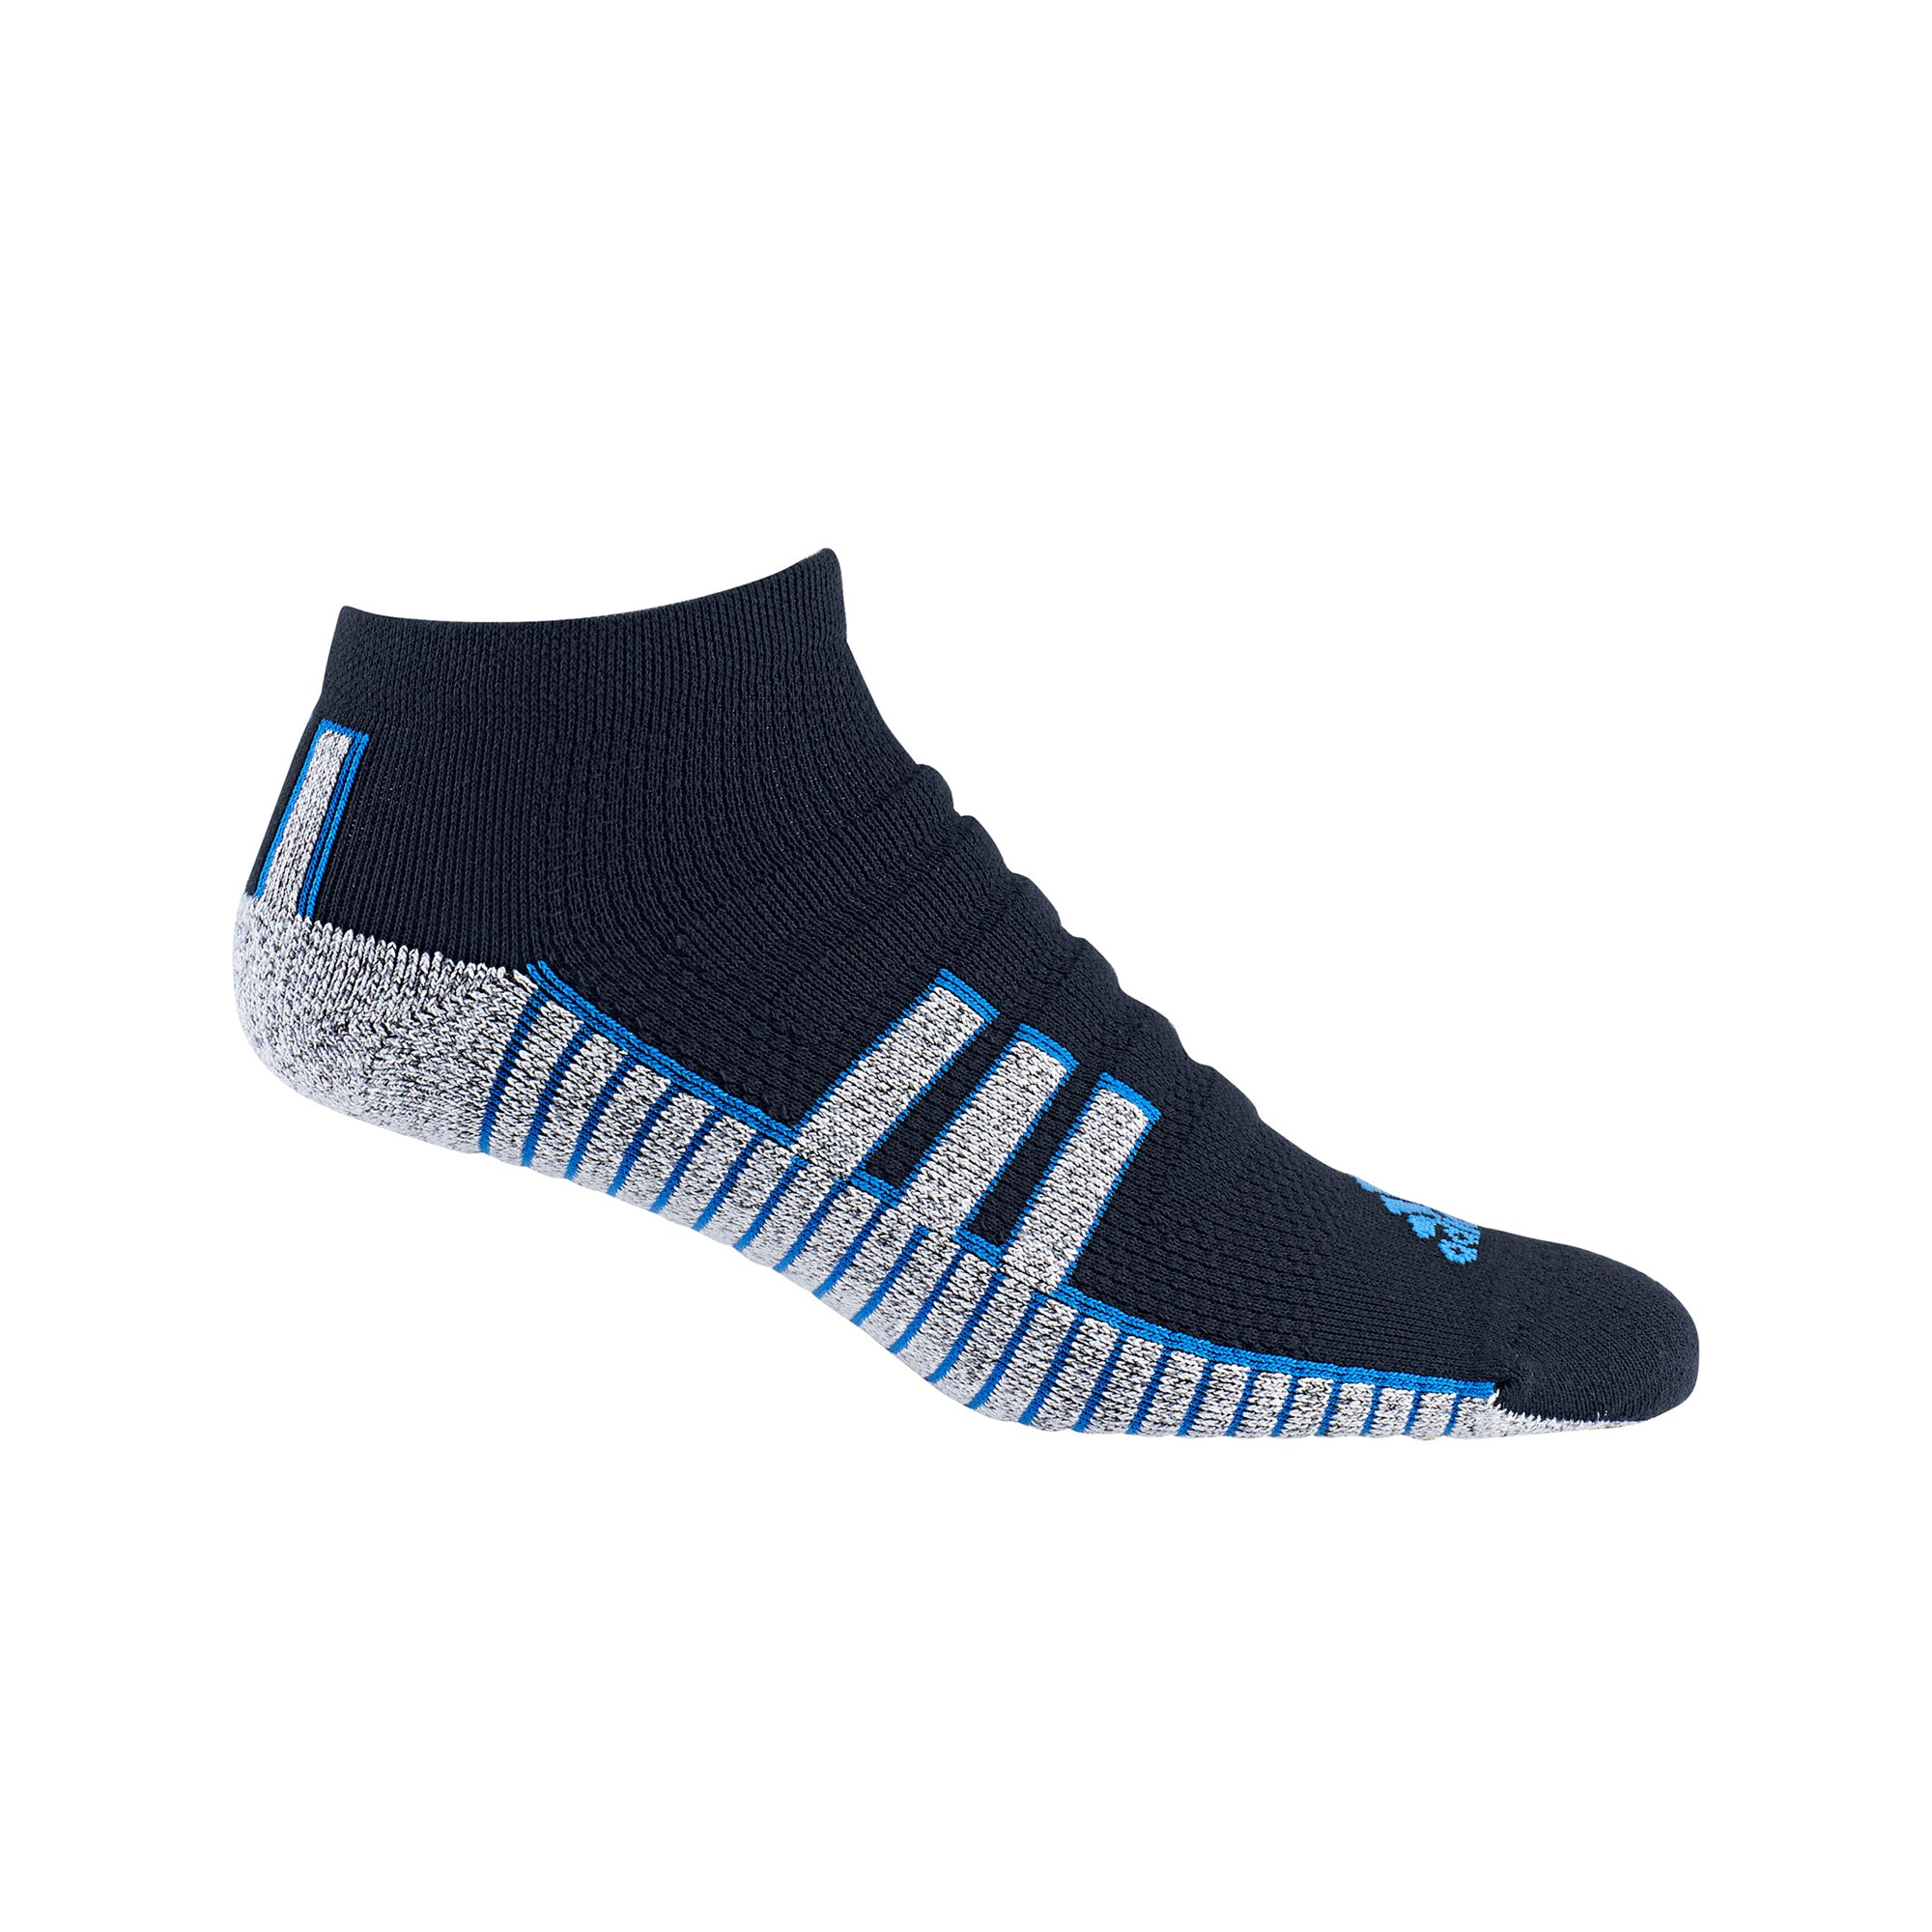 adidas Golf Single Tour360 Ankle Socks DP1635